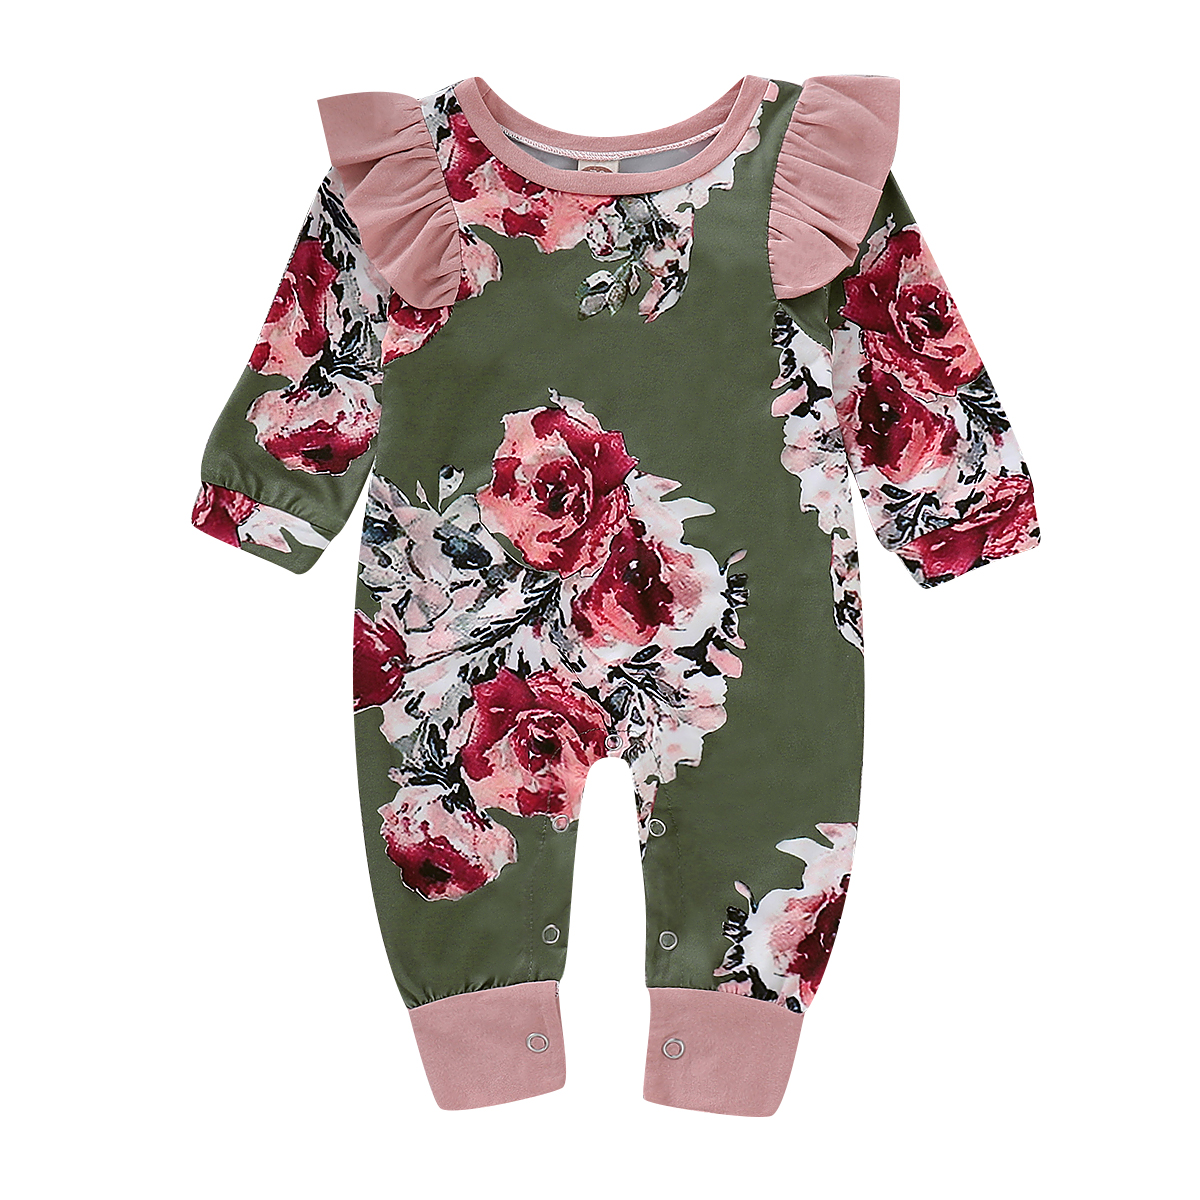 2019 New Baby Girl   Romper   Newborn Sleep Suit Flower Baby   Rompers   Infant Baby Clothes Long Sleeve Newborn Jumpsuits